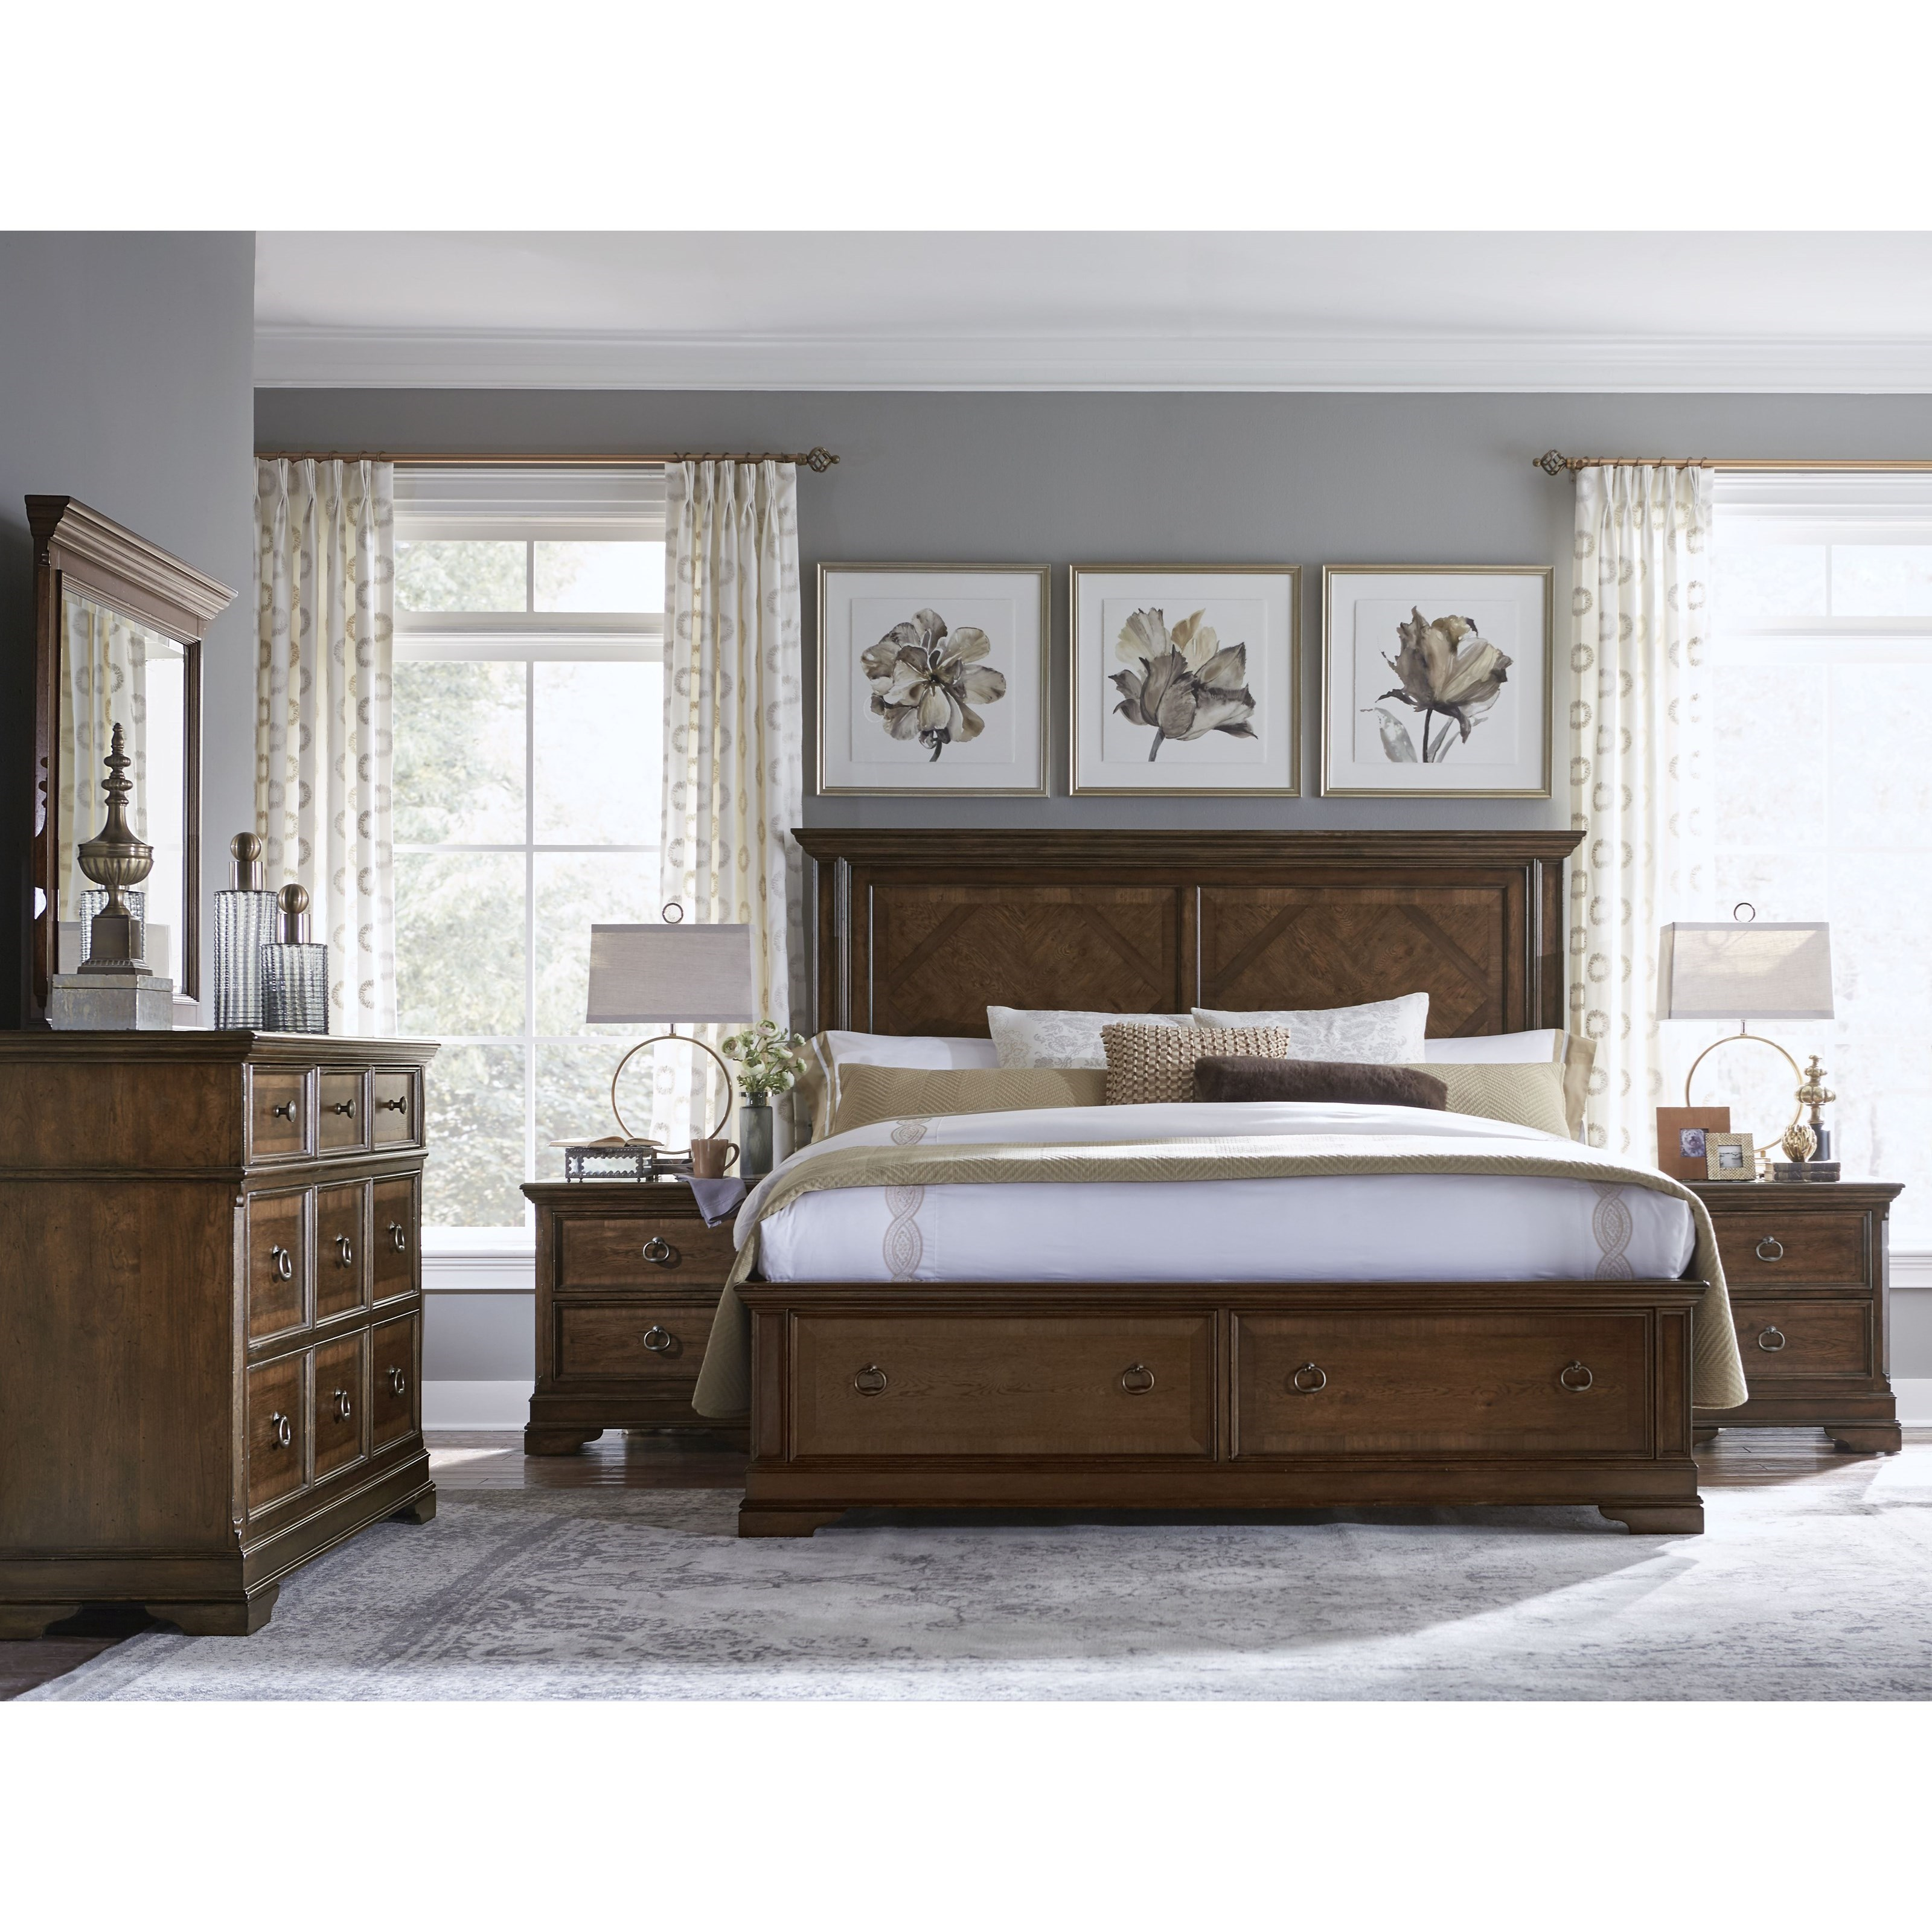 Legacy Classic Latham Queen Bedroom Group Dunk Bright Furniture Bedroom Groups